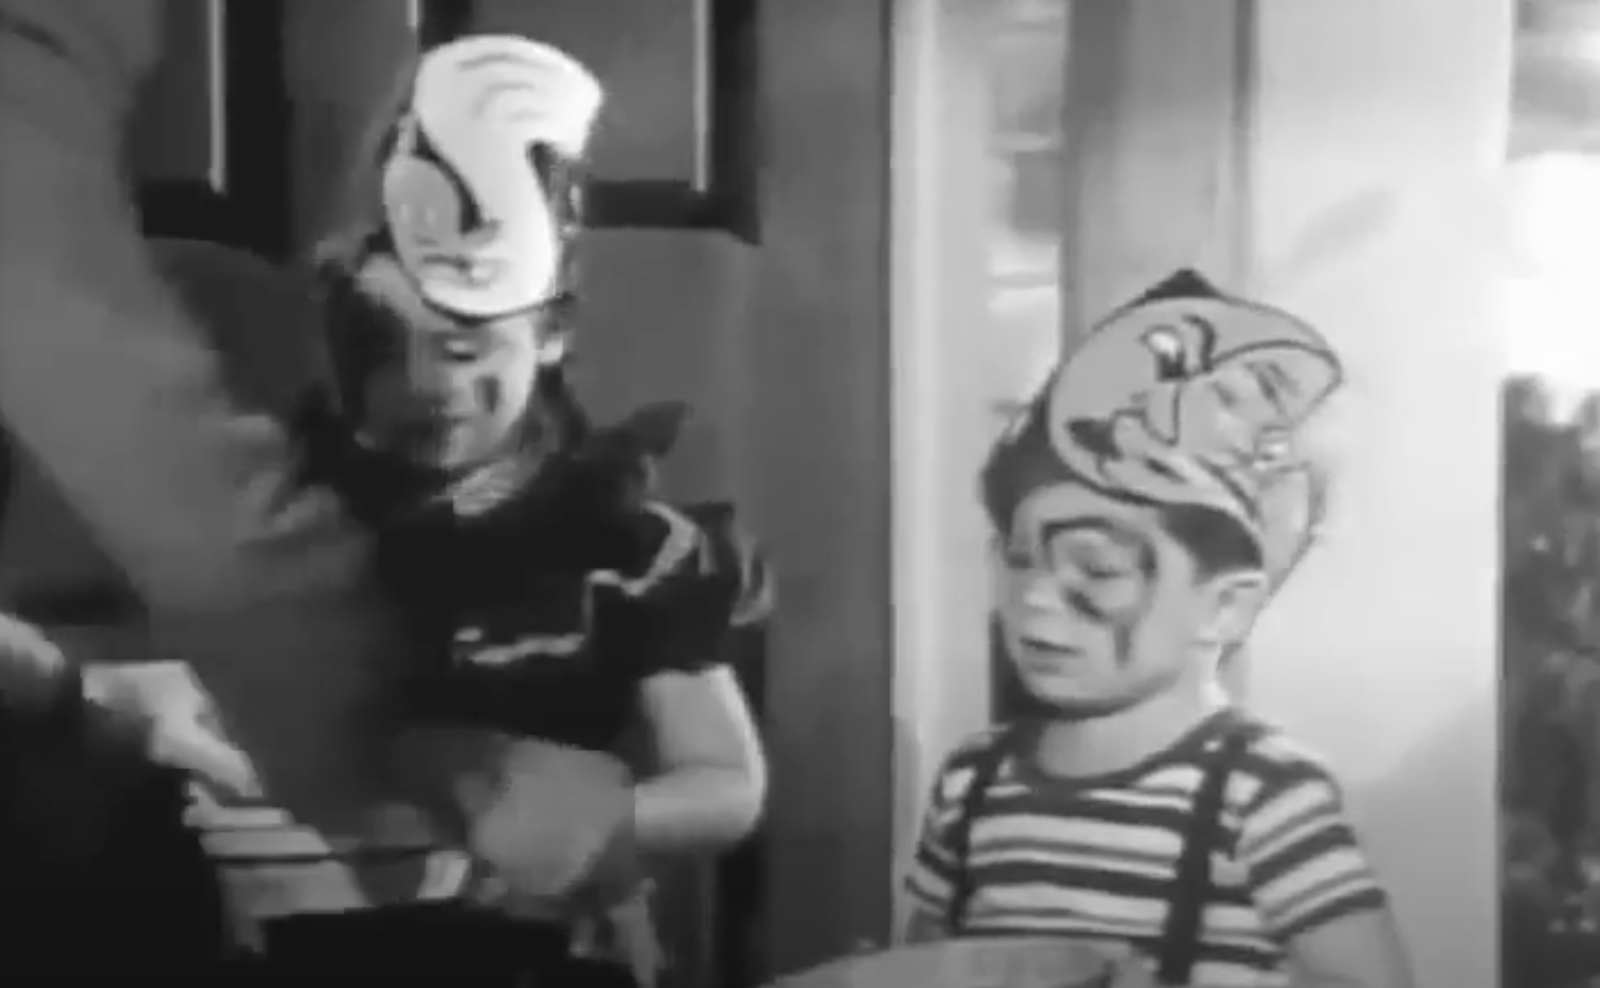 Jerry Mathers Made His TV Debut In An Early '50s Halloween Episode Before He Was 'The Beaver'